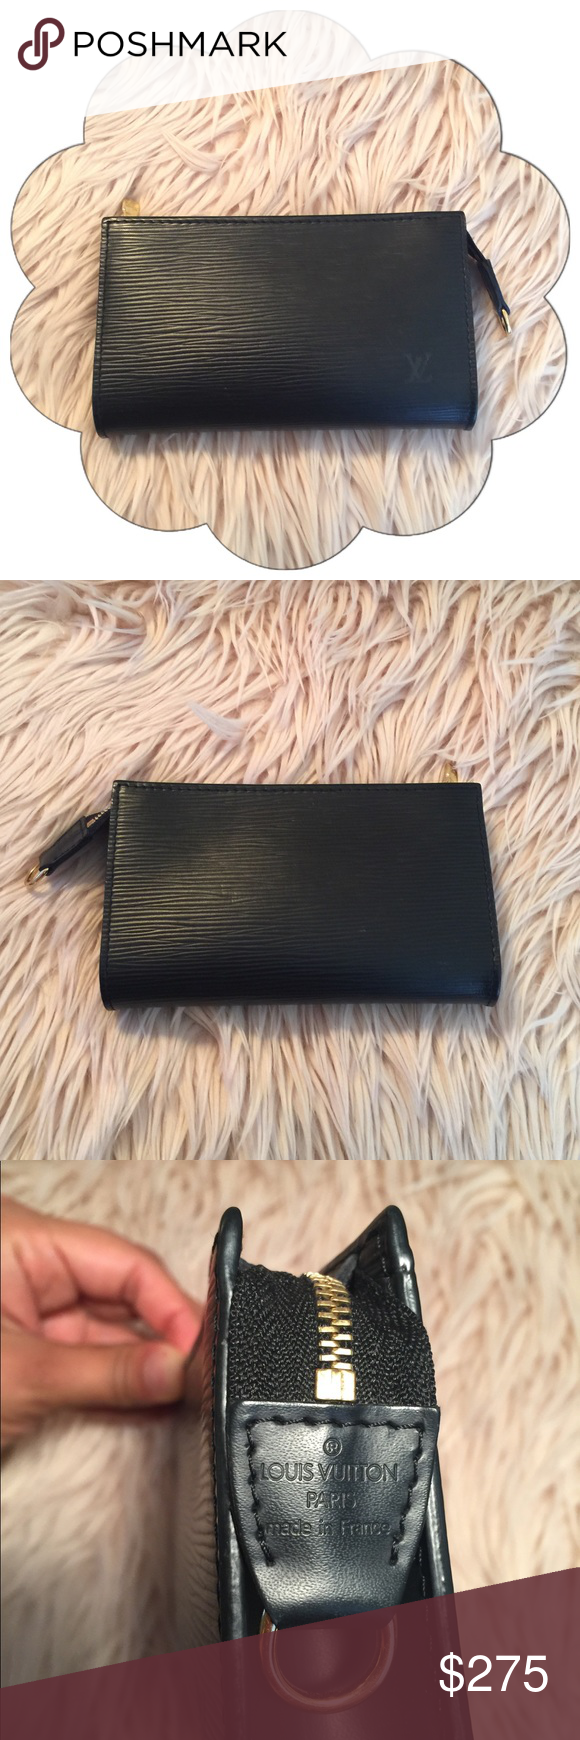 Authentic Louis Vuitton Epi Leather Pouch Leather pouch